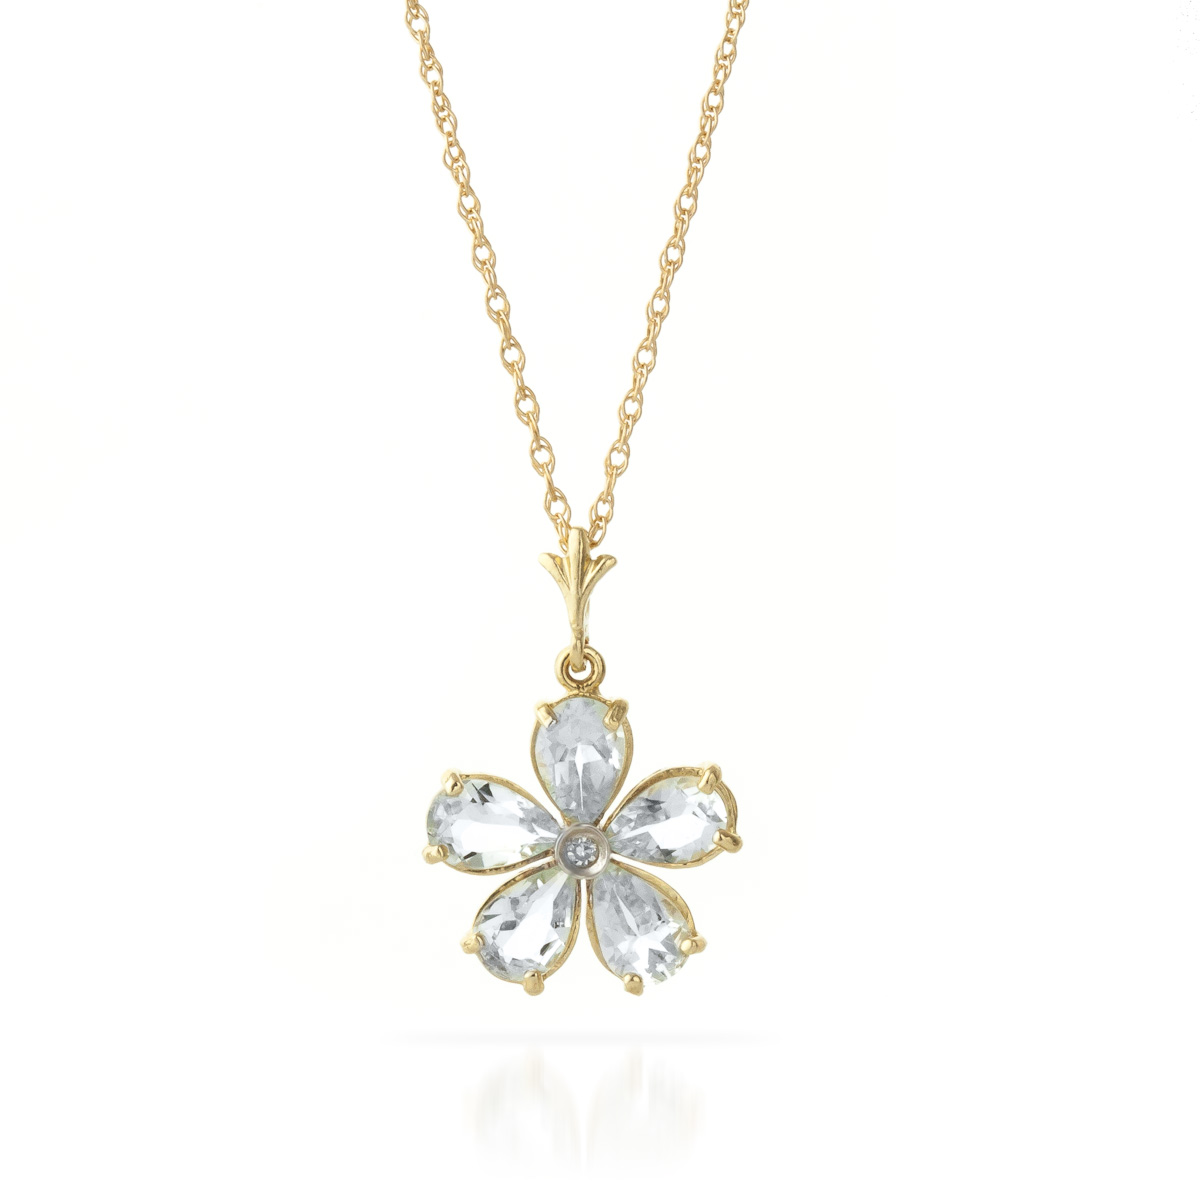 Aquamarine and Diamond Flower Petal Pendant Necklace 2.2ctw in 9ct Gold